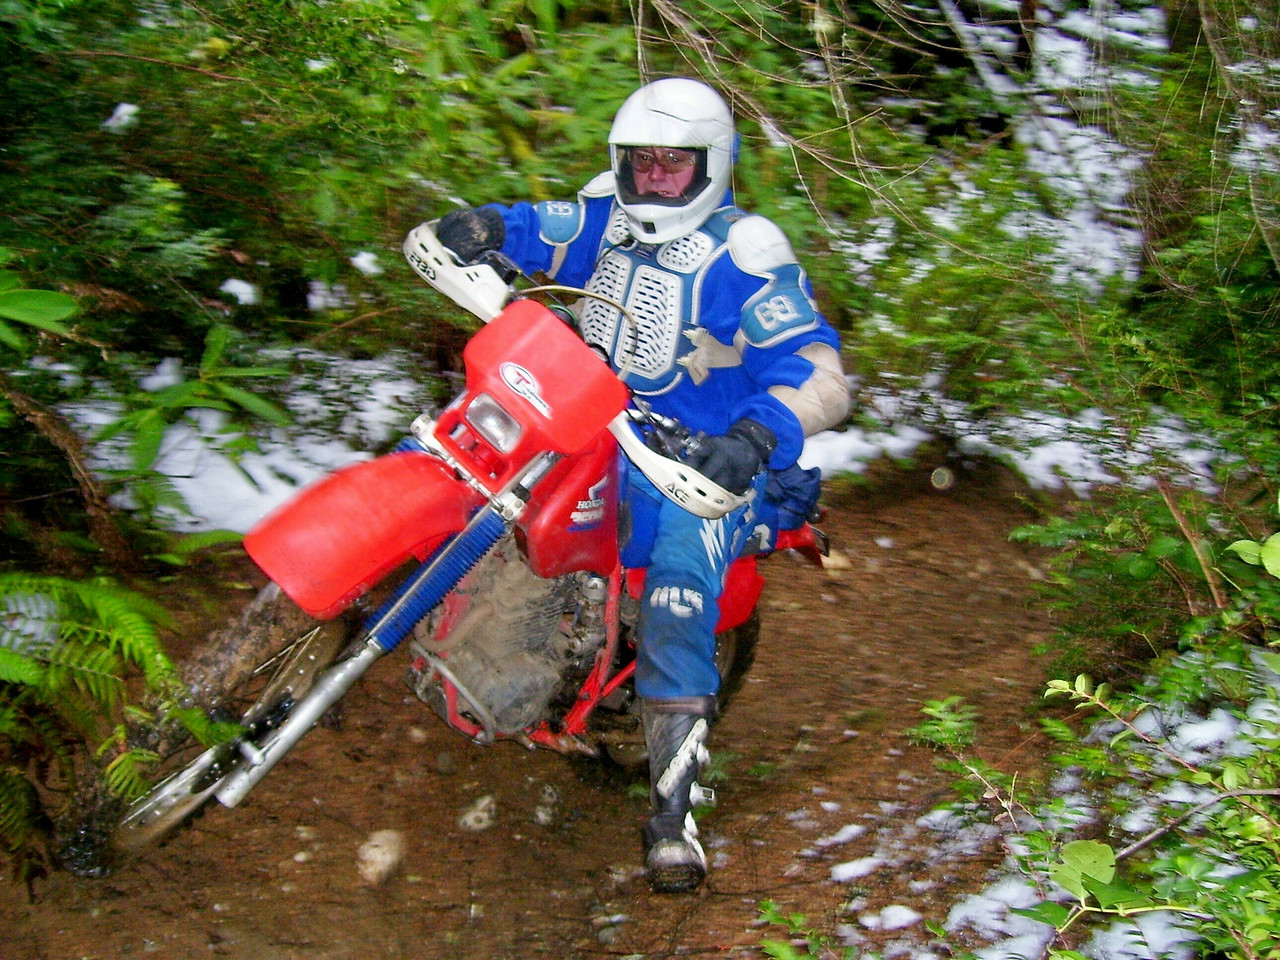 Bill and his XR 350R